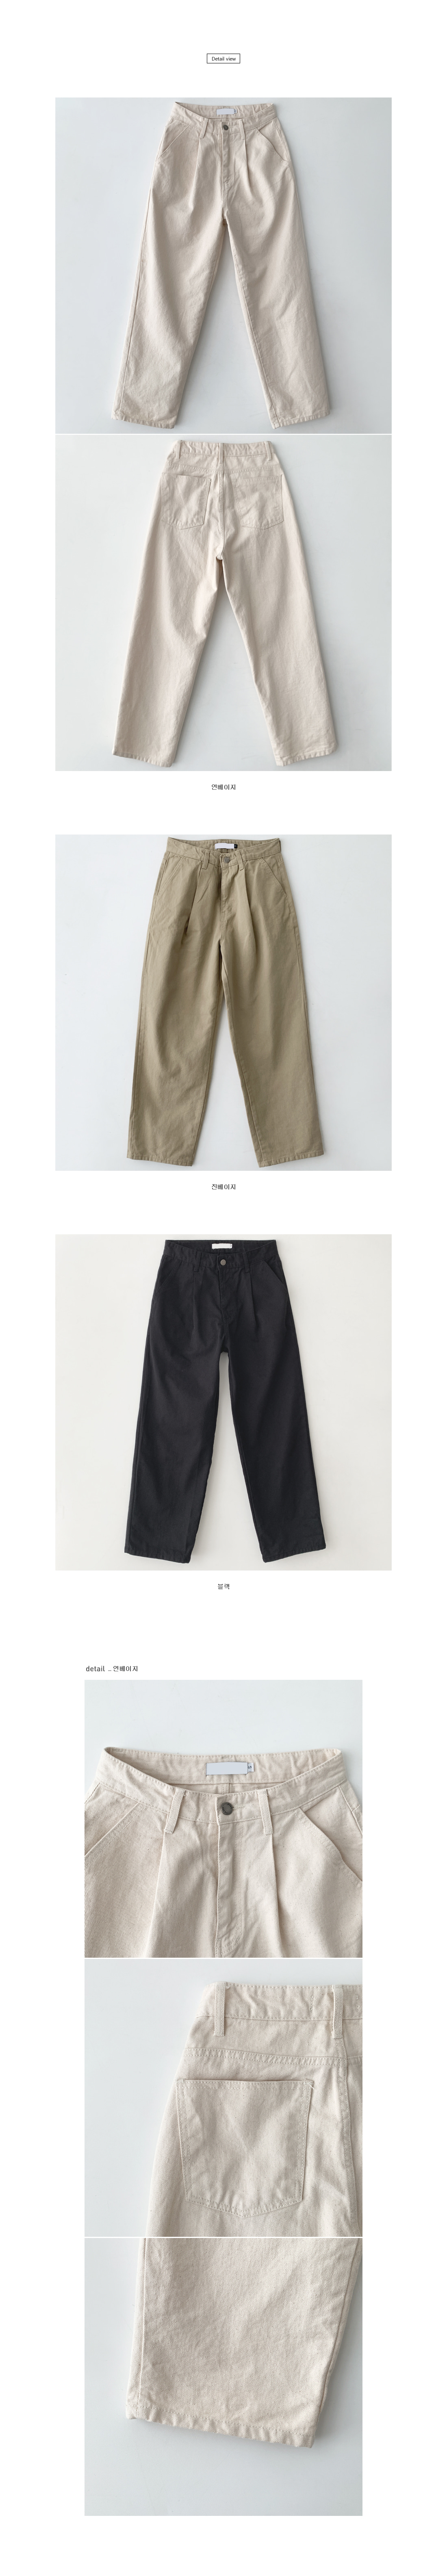 Fave Pintuck Wide Pants-Black Small Size